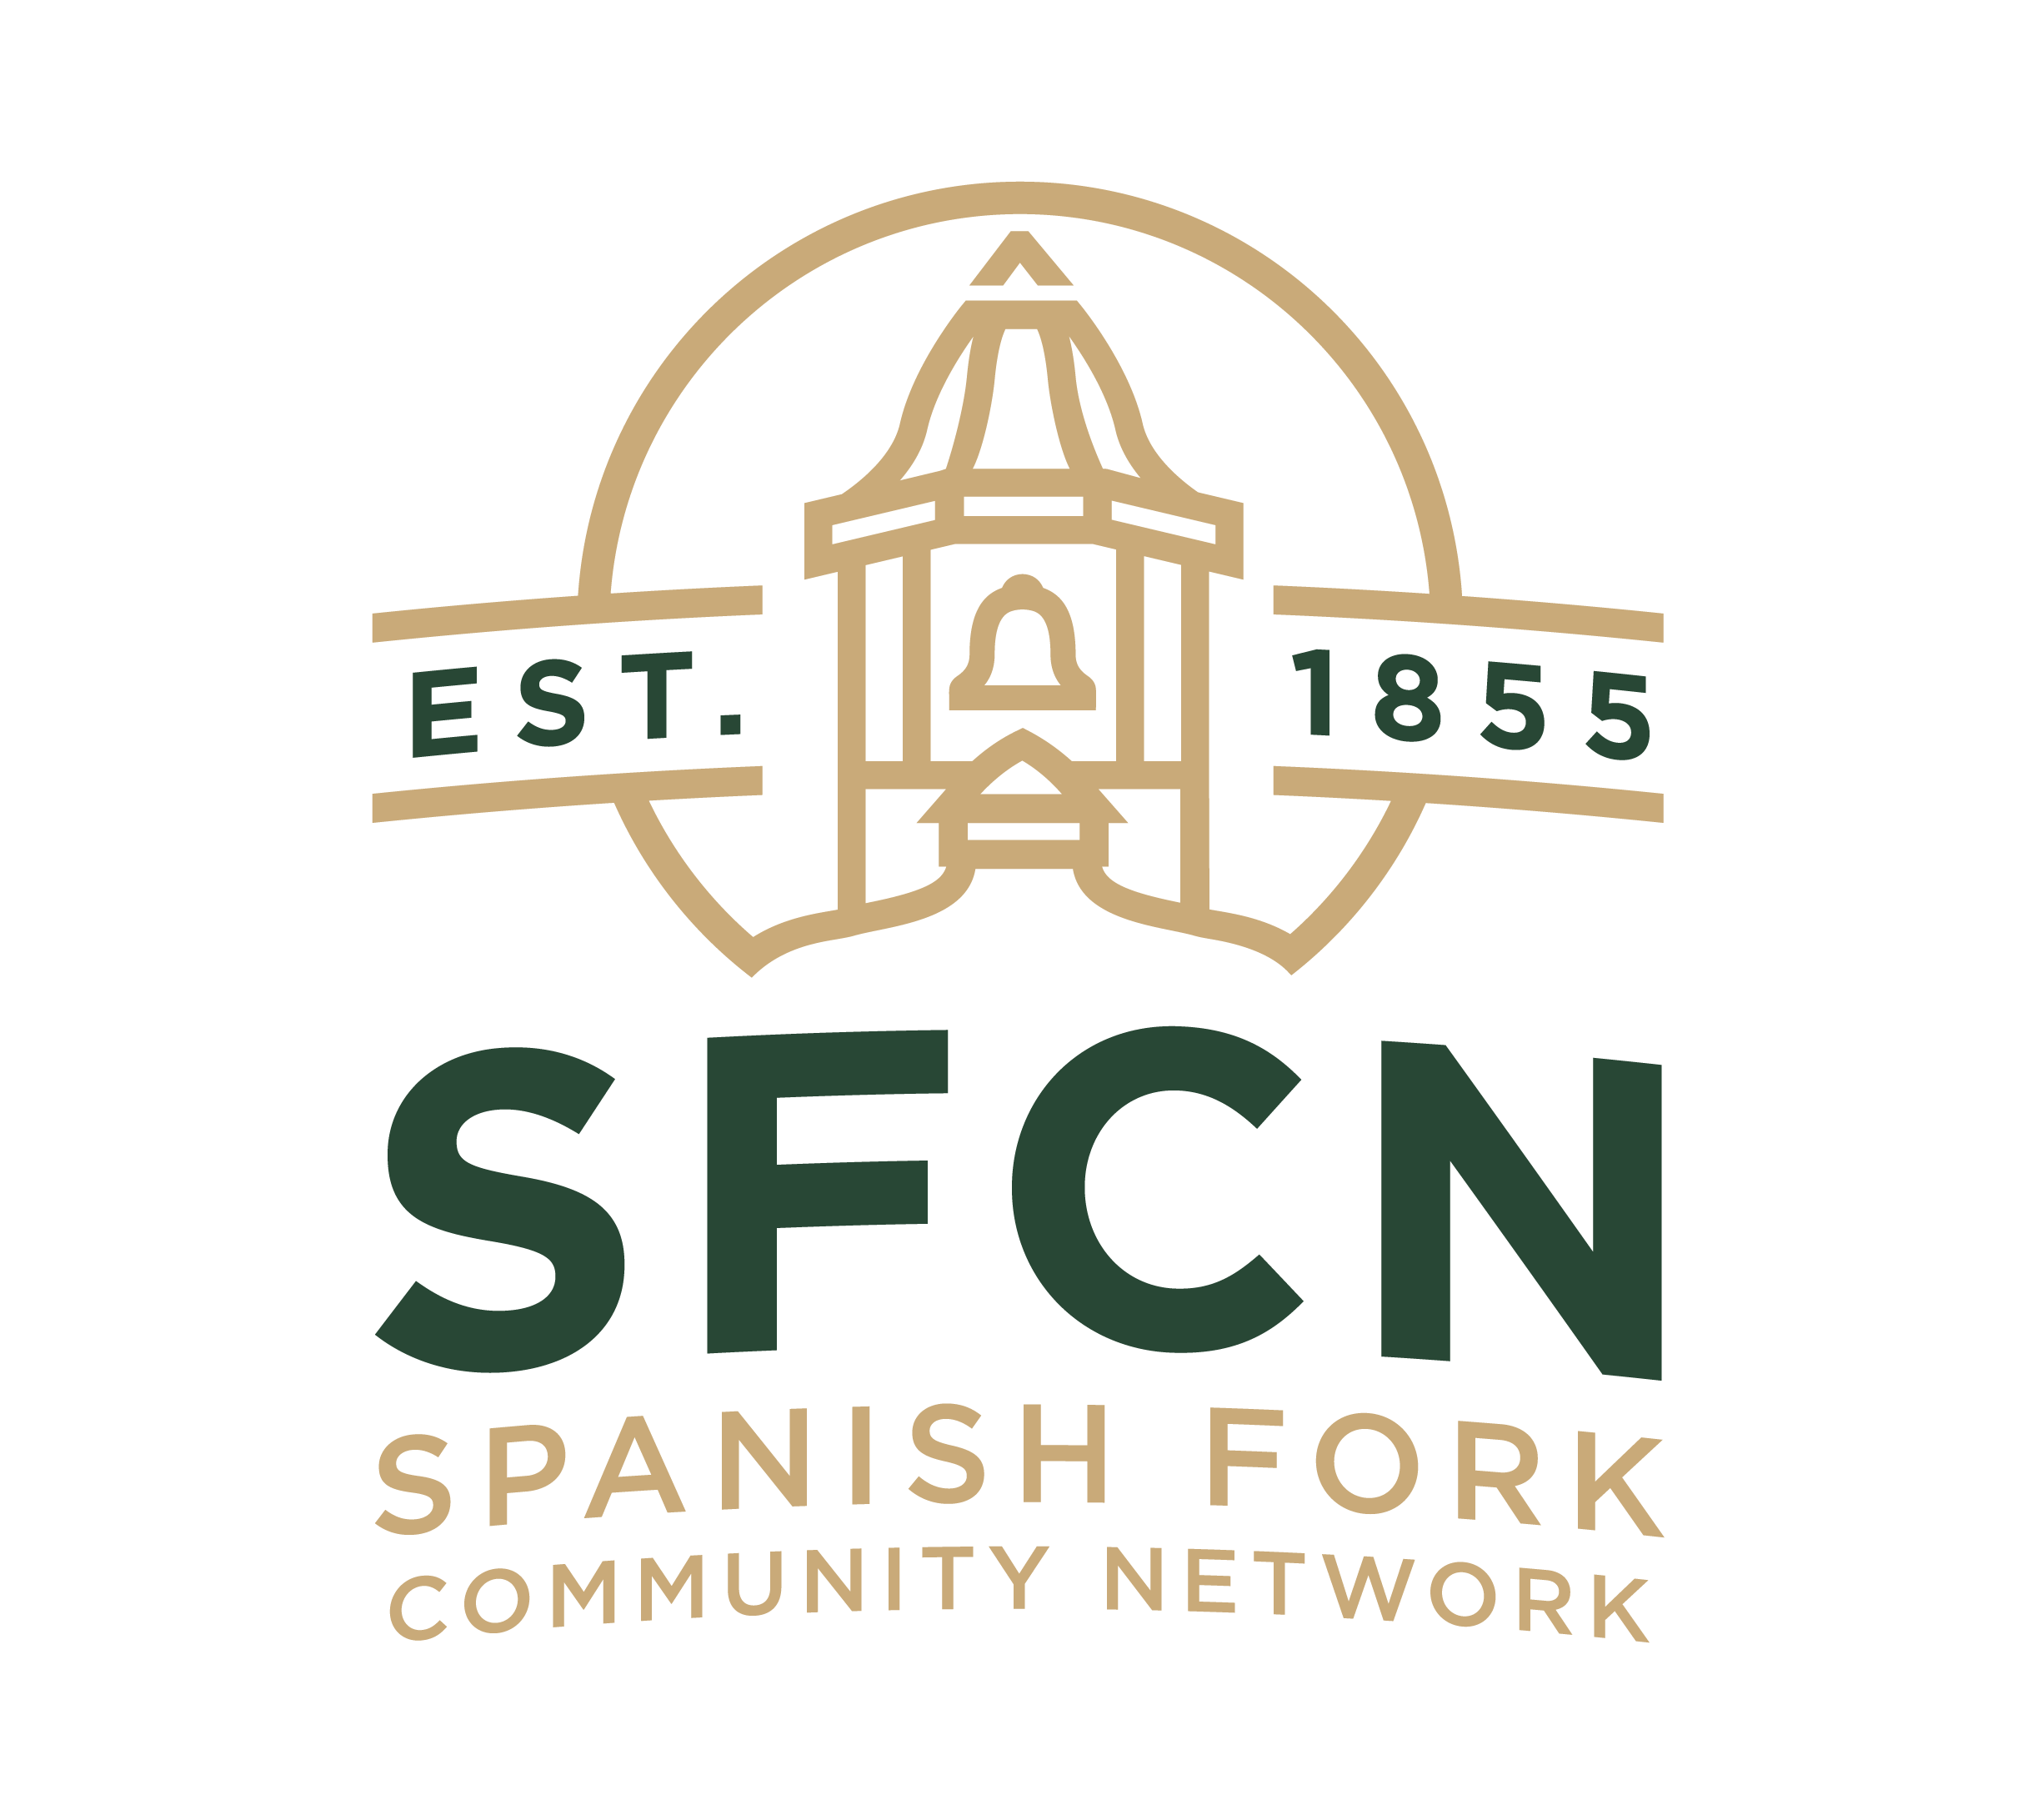 SFCN Logo, links to home page